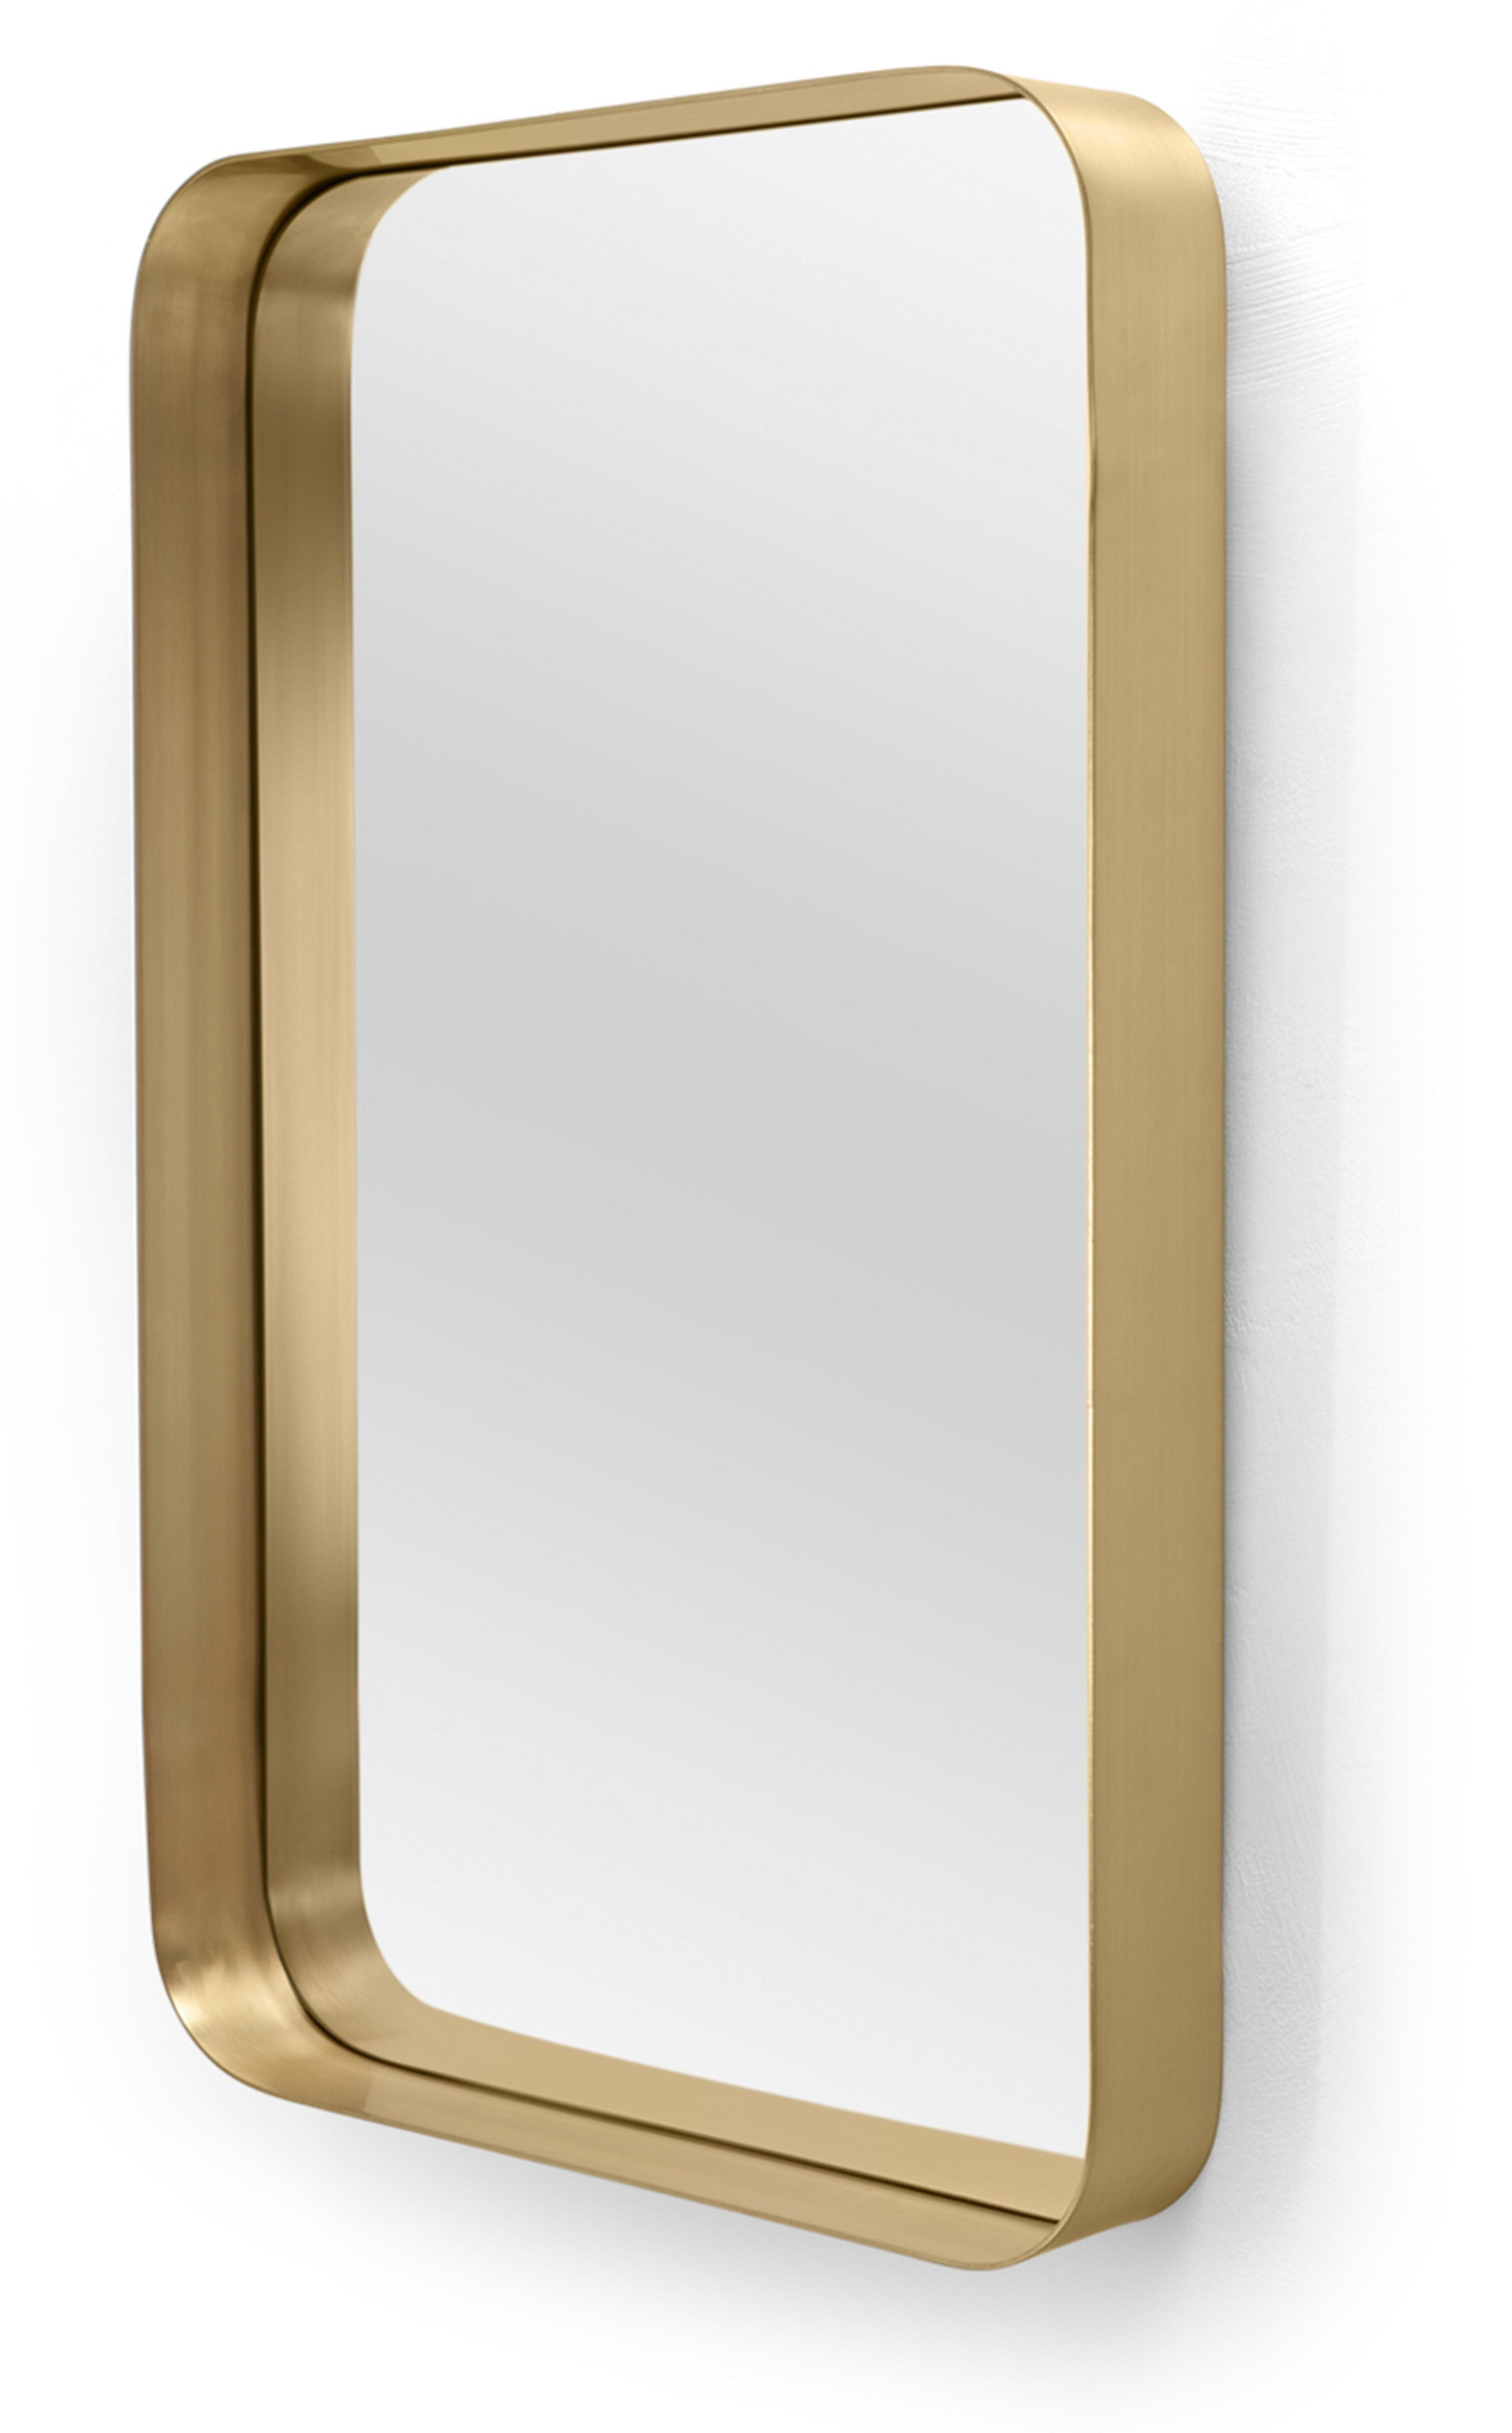 Alana Rectangular Mirror 50 X 80 Cm, Brushed Brass | Mirror Within Lugo Rectangle Accent Mirrors (Image 2 of 20)